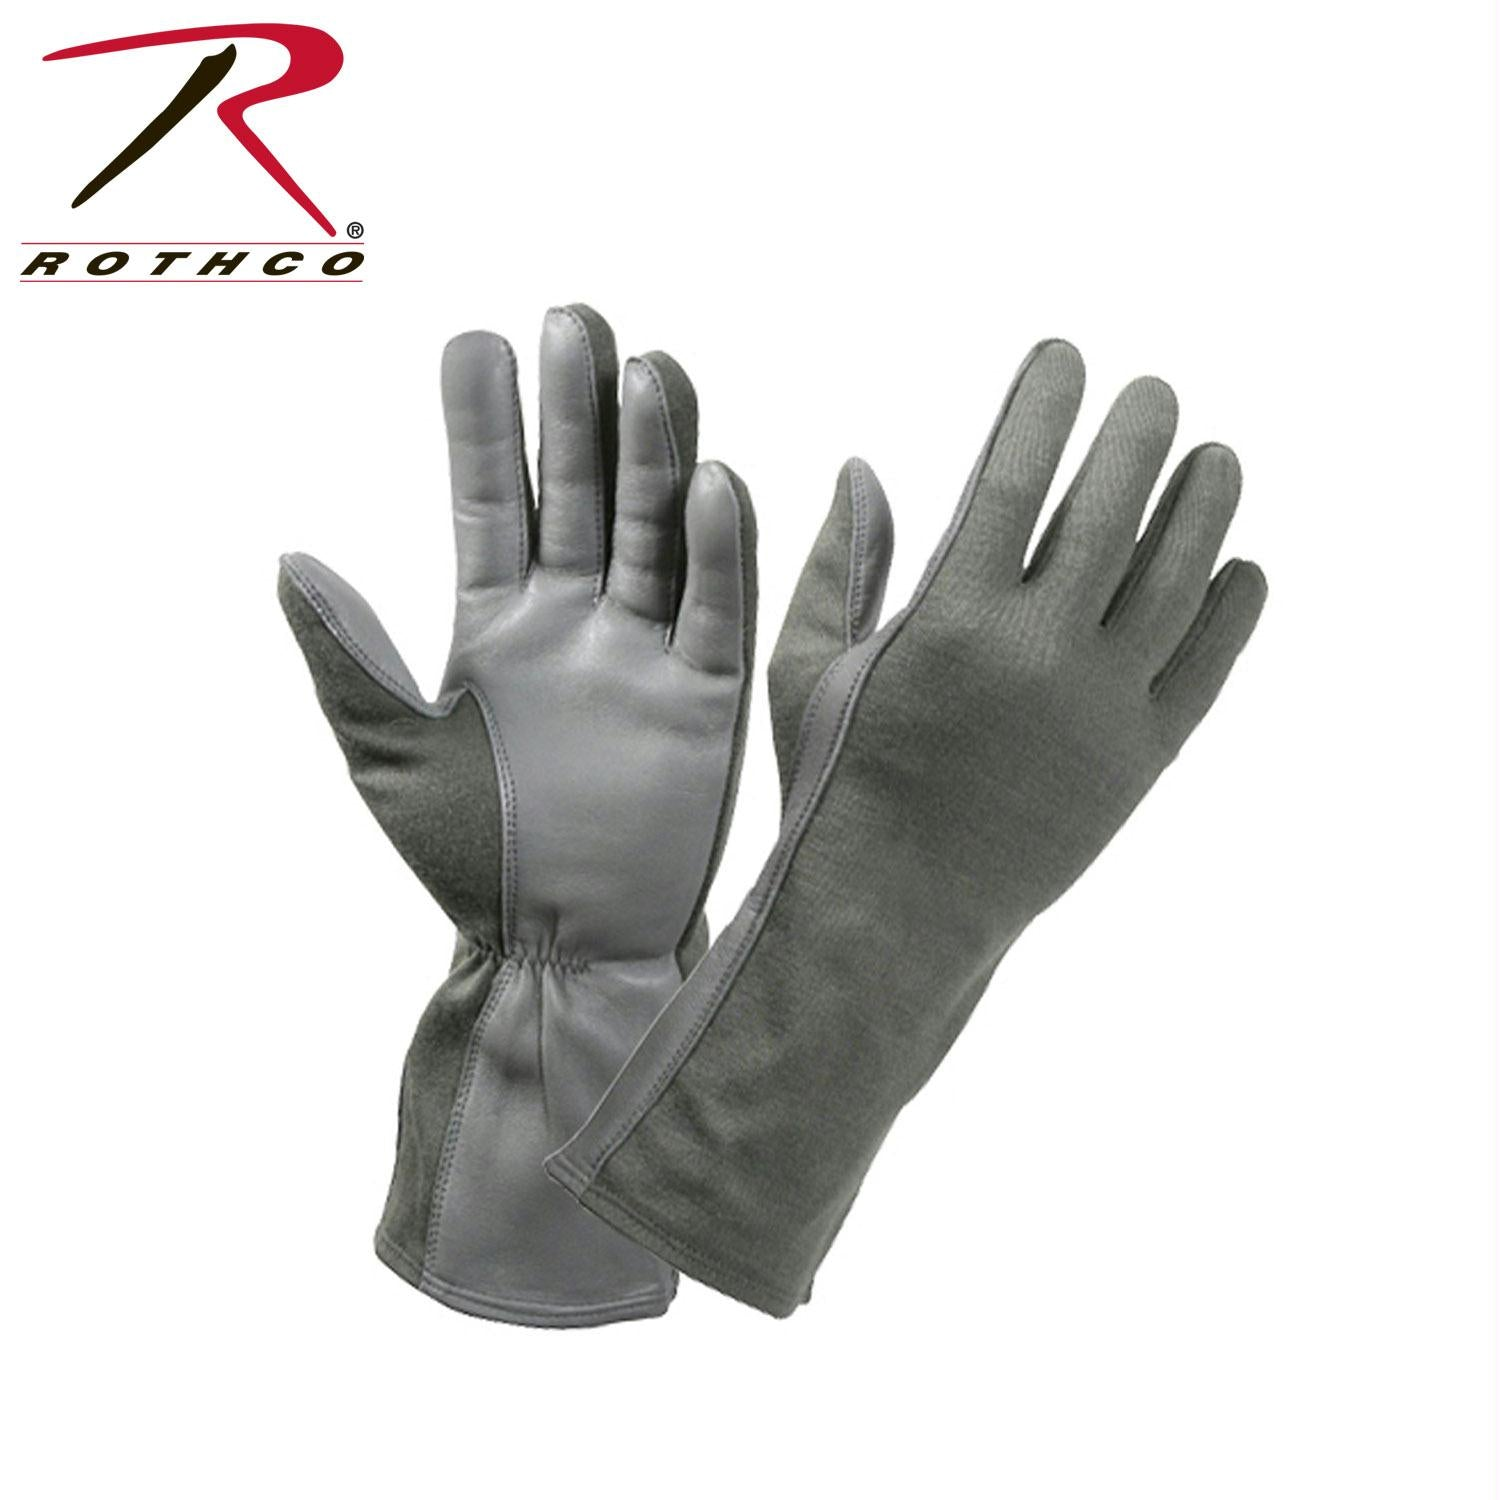 Rothco G.I. Type Flame & Heat Resistant Flight Gloves - Foliage Green / 12